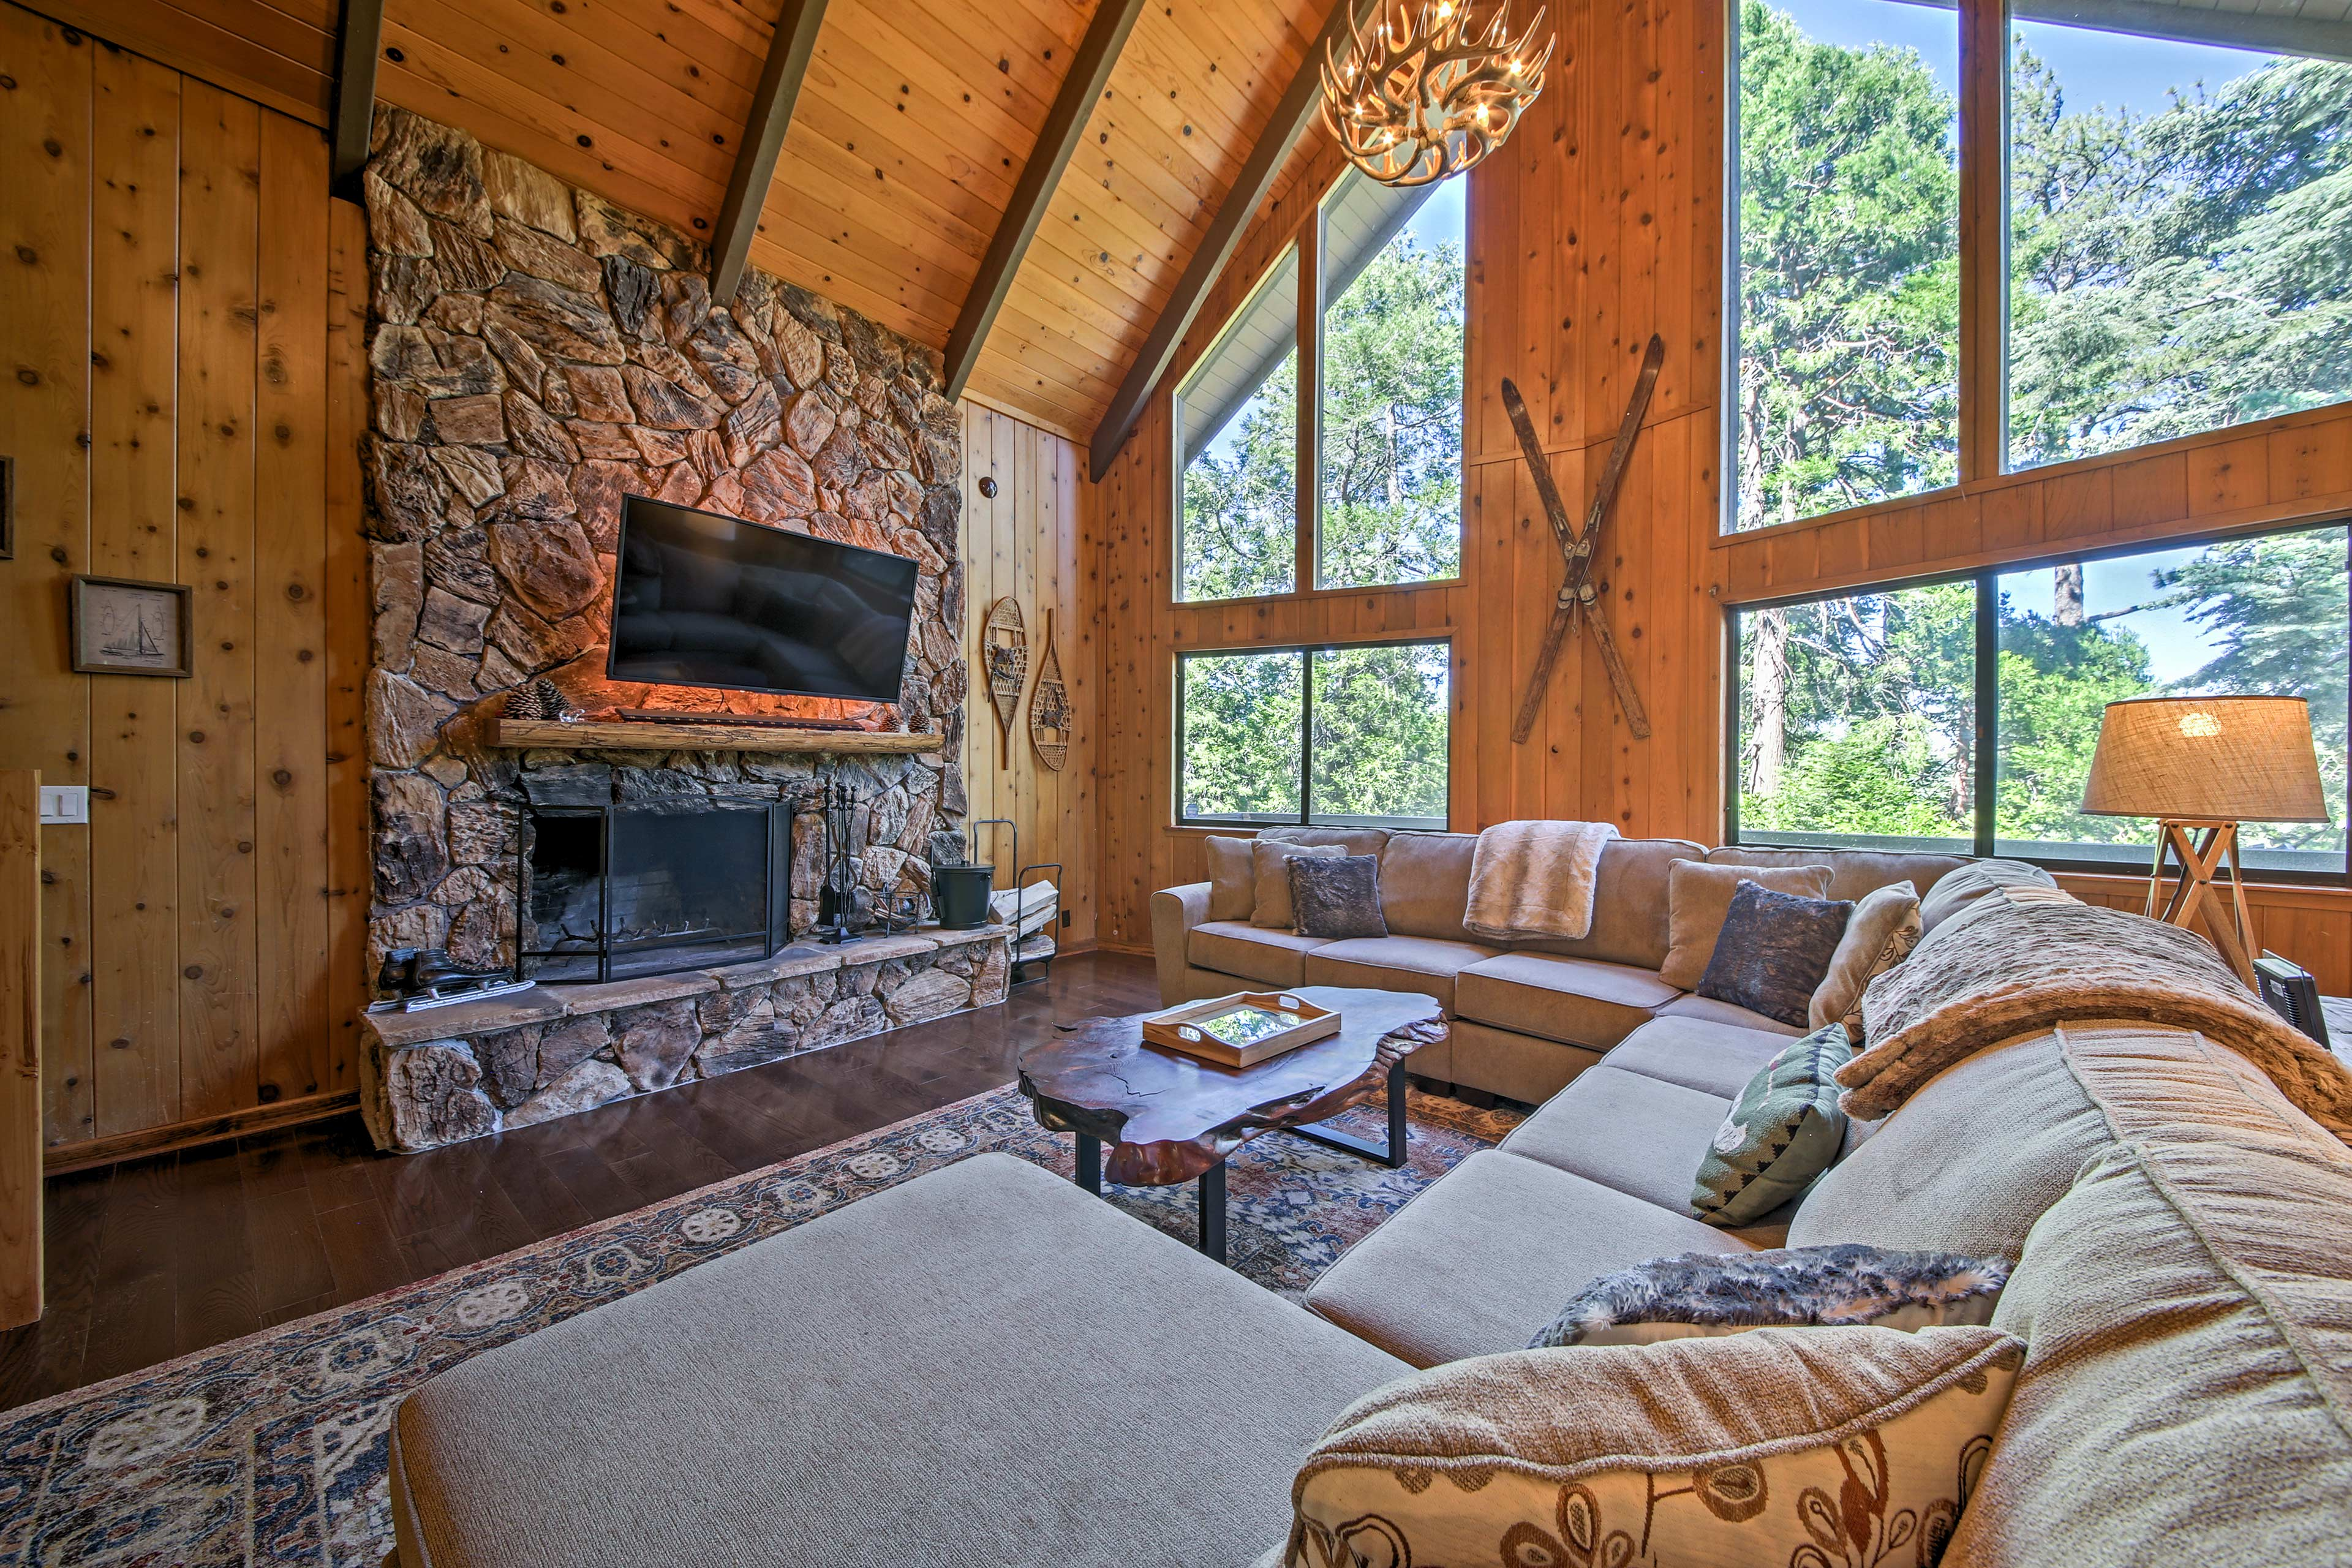 Explore beautiful Lake Arrowhead from this vacation rental house.